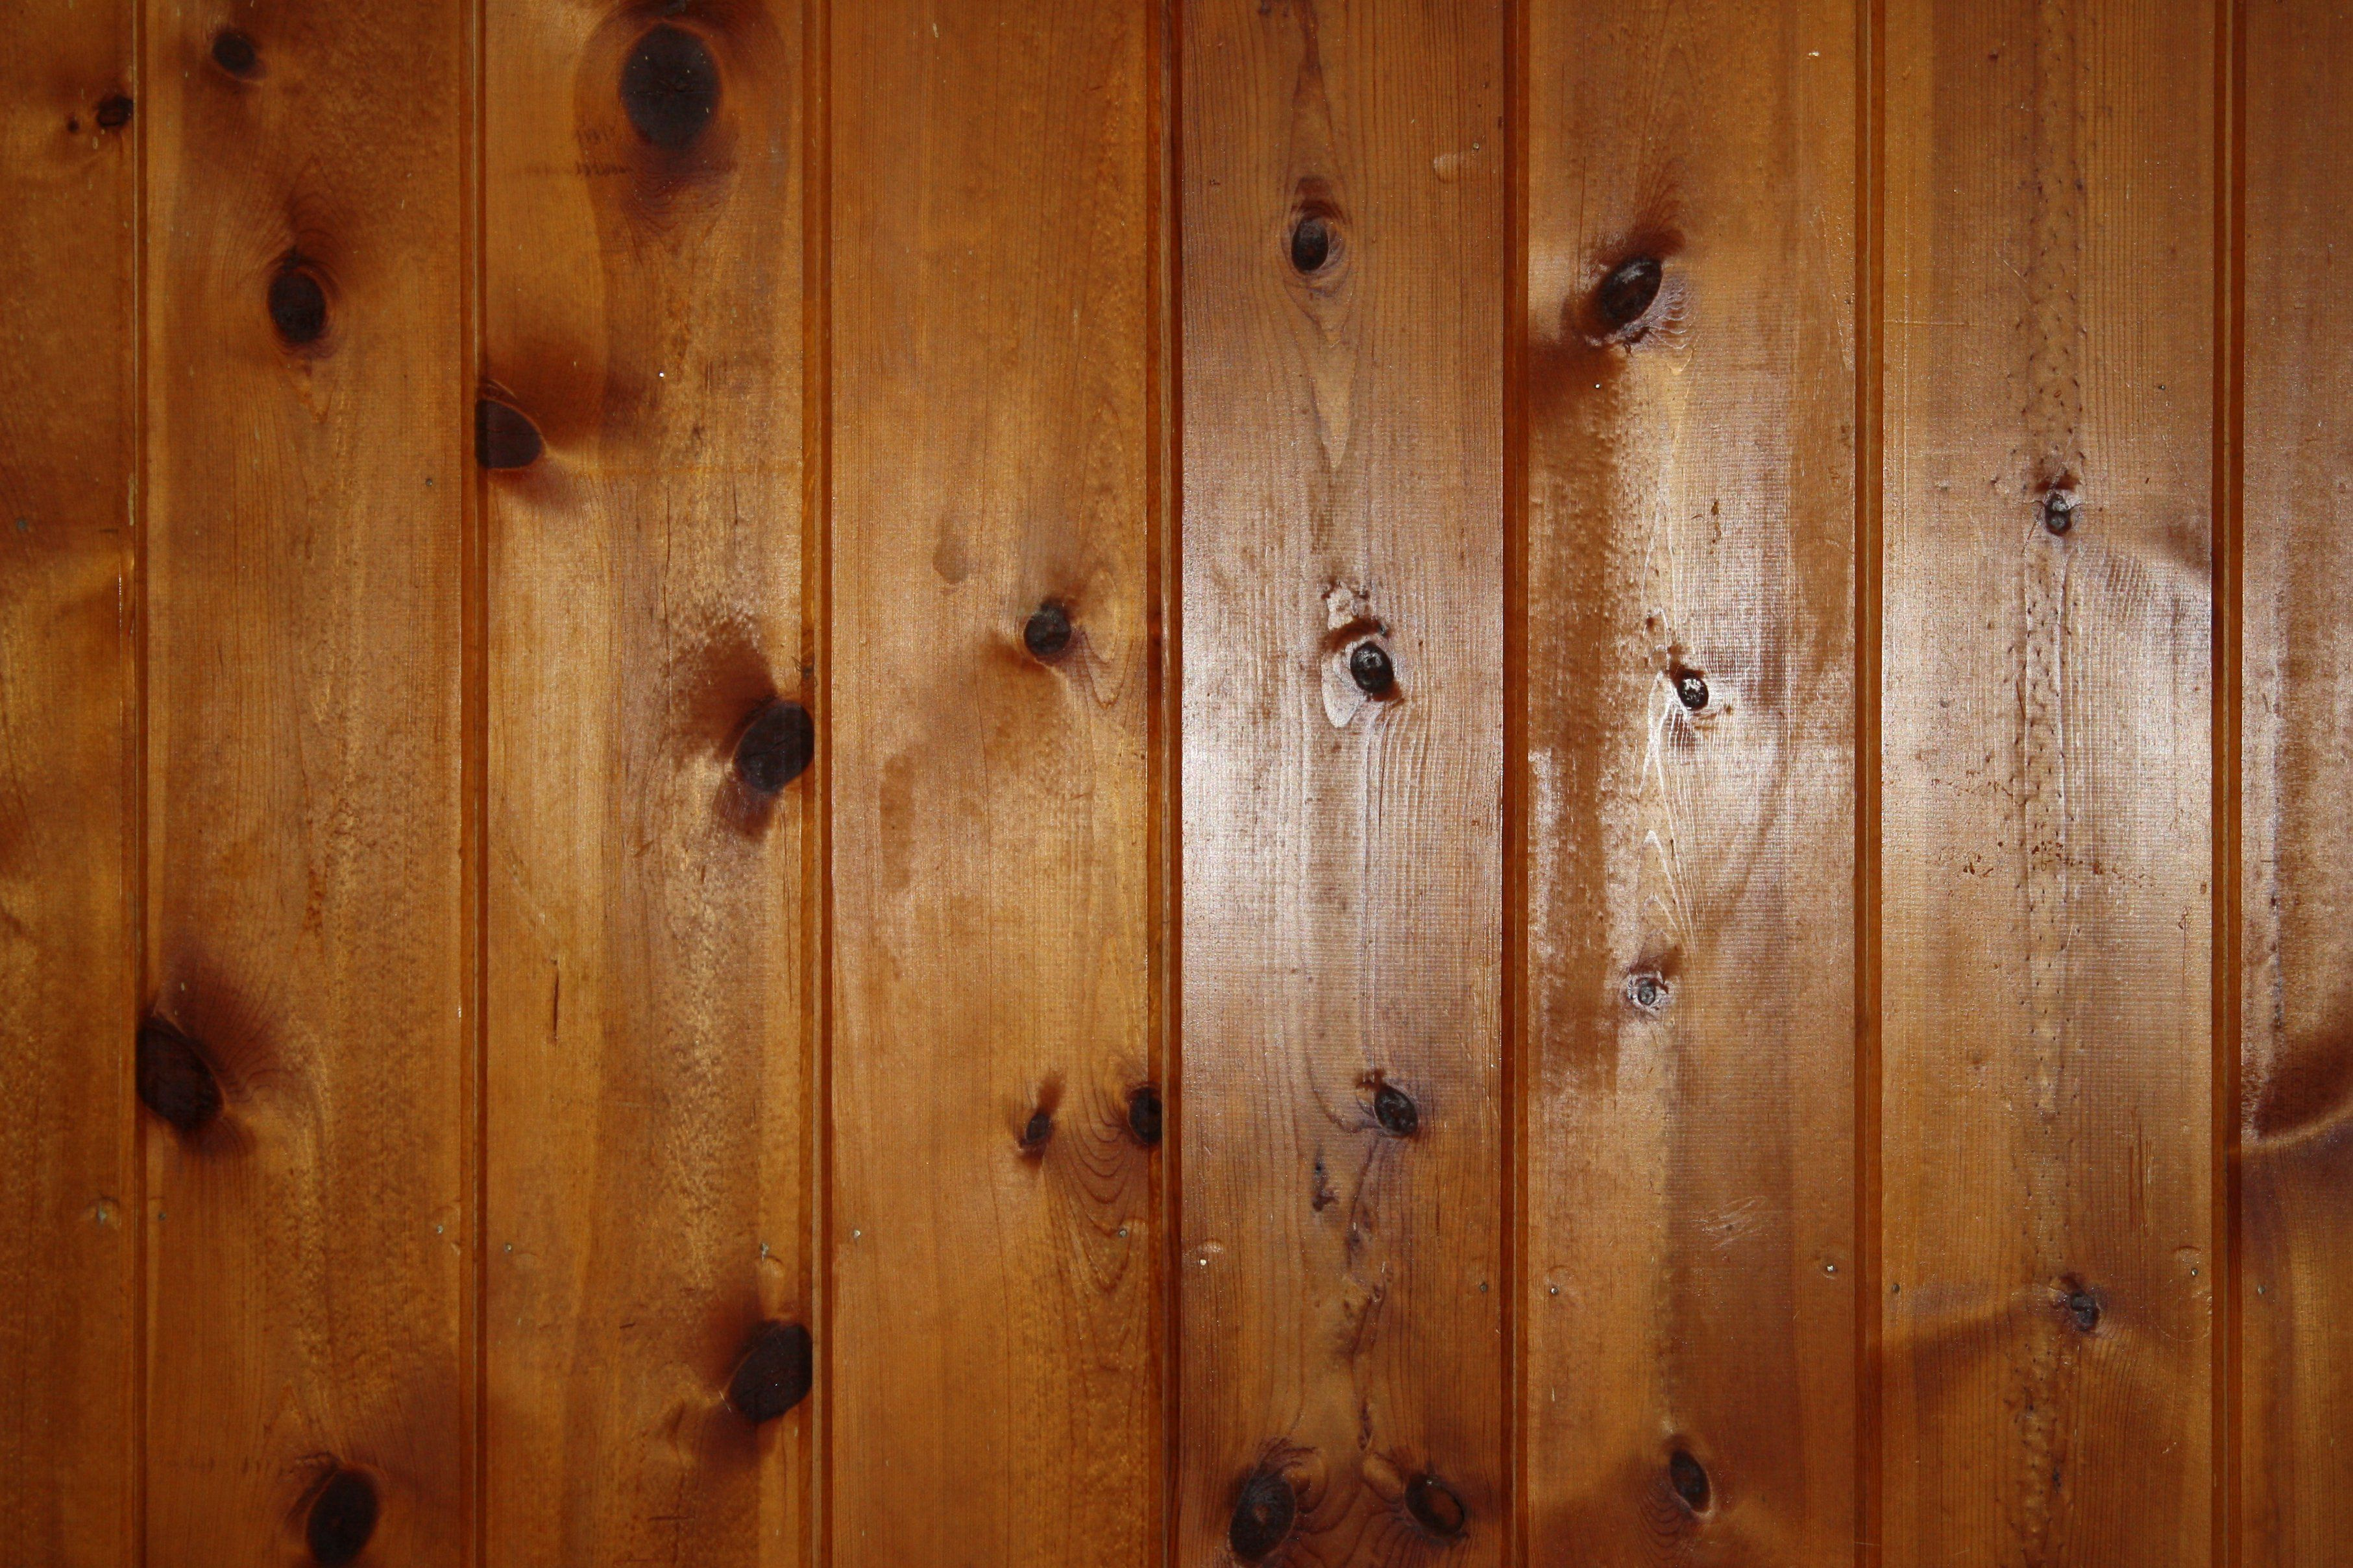 Knotty Pine Walls Knotty Pine Wood Wall Paneling Texture Free High Resolution Photo Painting Wood Paneling Pine Wood Walls Knotty Pine Paneling